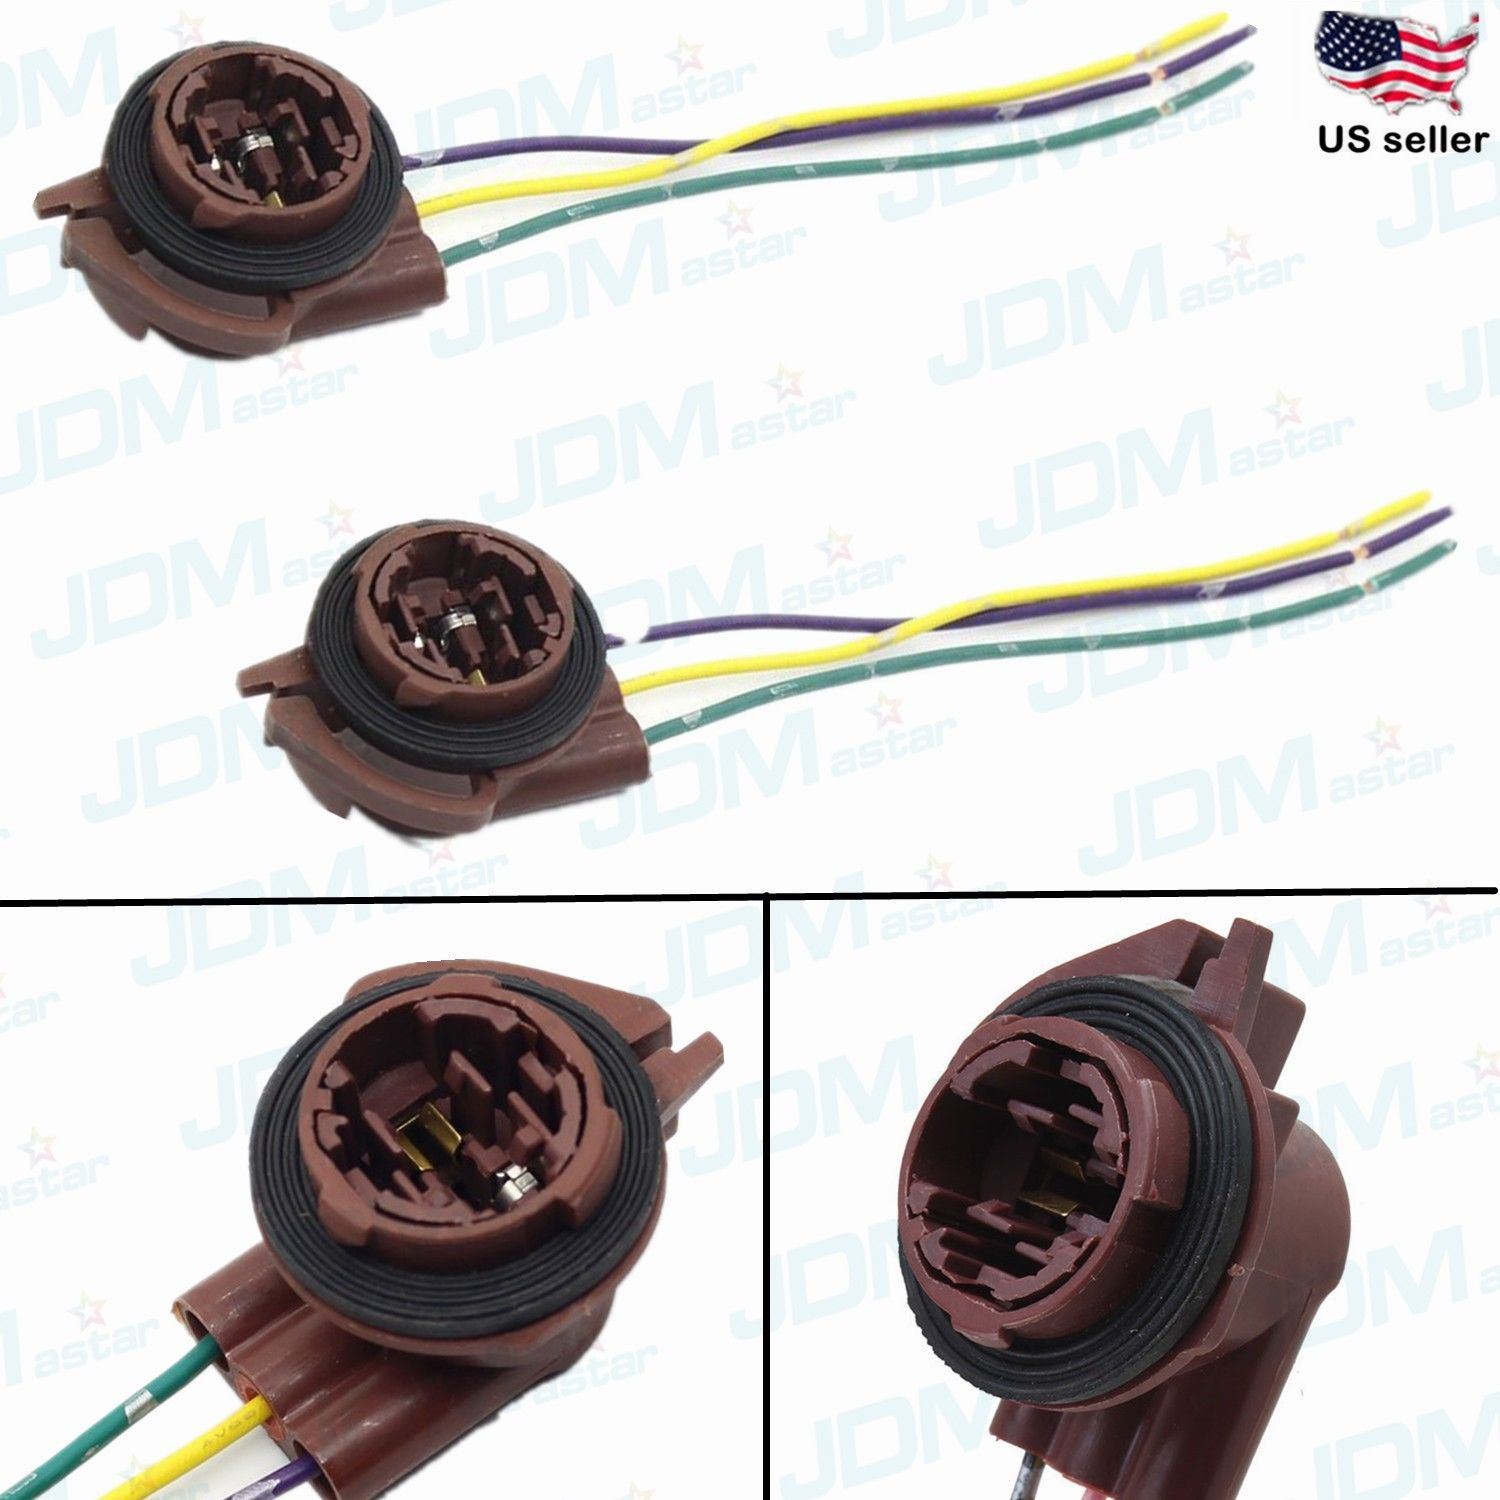 3157A socket harness 1?versionId=luZVsWTmtBB0K6WrOp6TCHwbqxcaKjlO jdm astar 3157 4157na bulb socket turn signal light harness wire 1986 Toyota 4Runner Wiring Harness at crackthecode.co